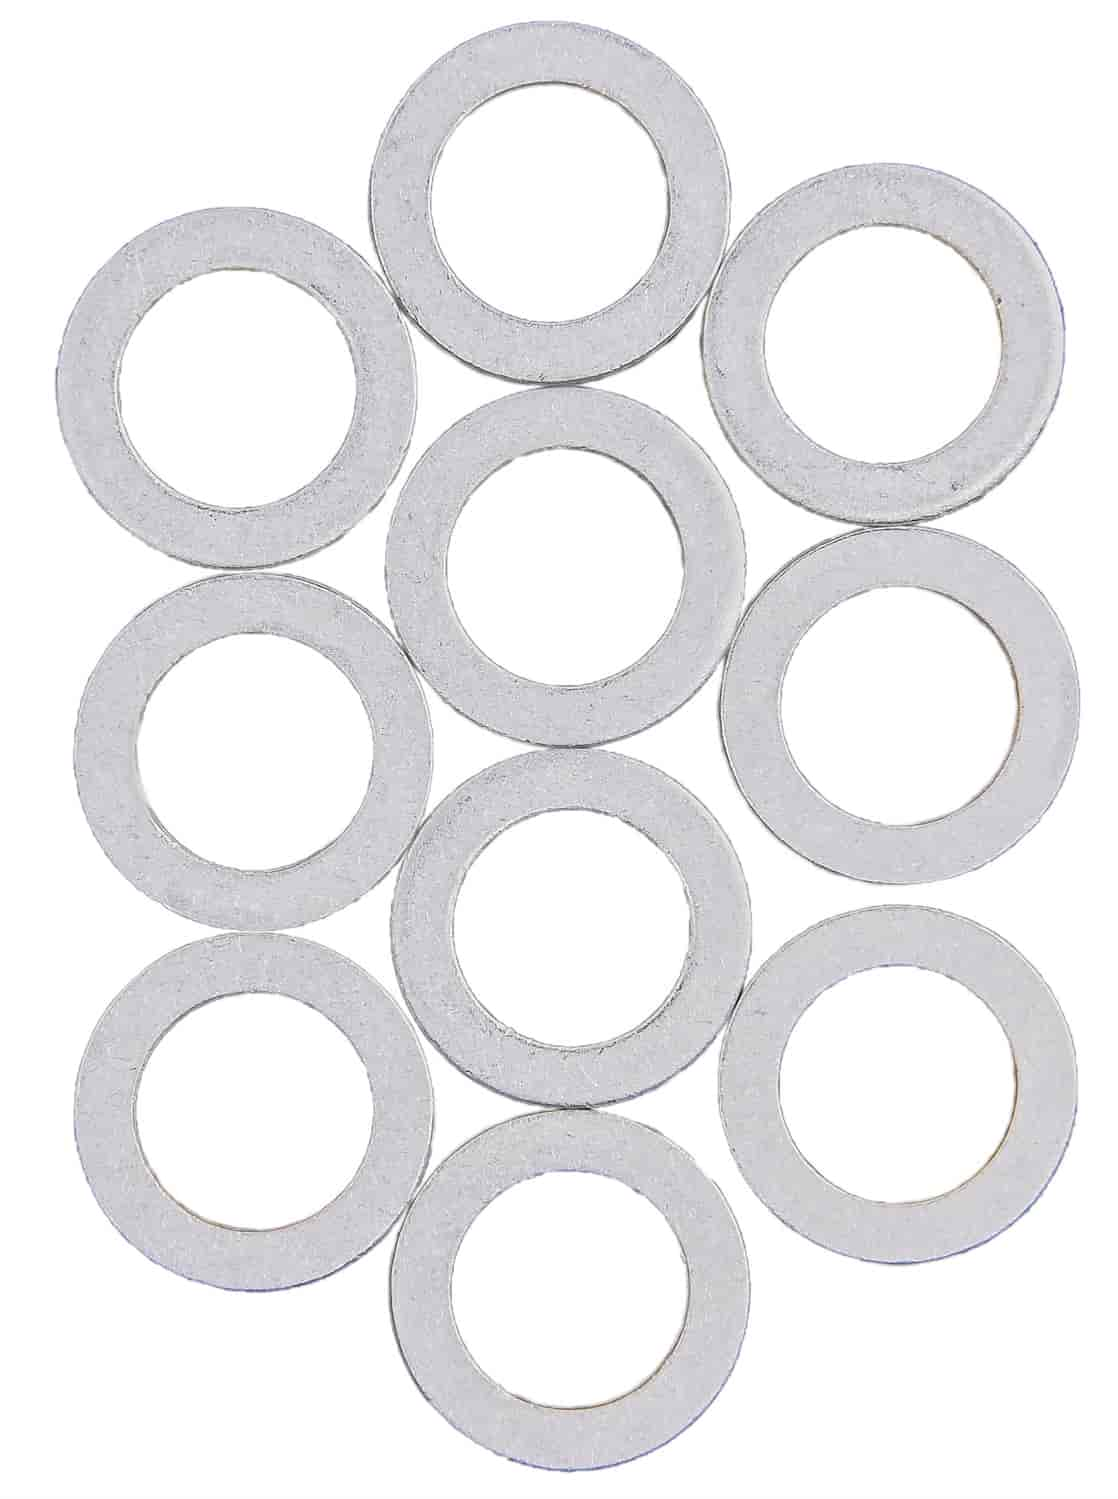 Earl's 177004 - Earl's AN 901 Aluminum Crush Washers